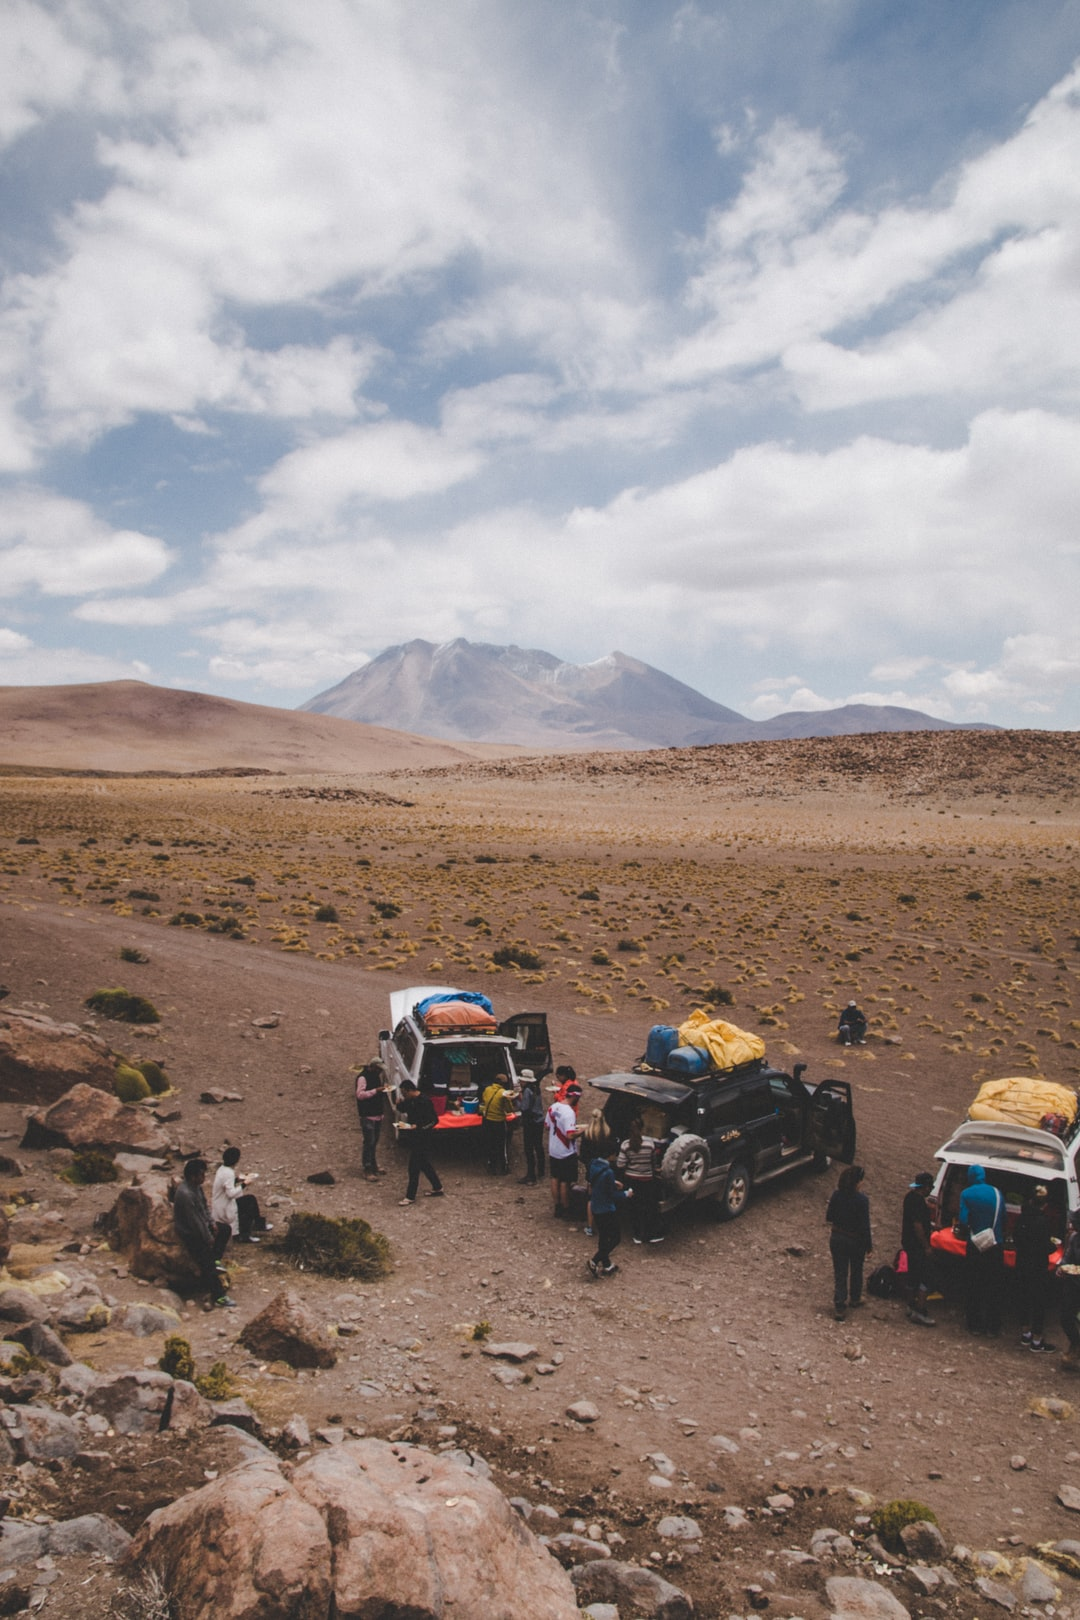 Just eating lunch of the back of the trucks that we cruised the Bolivian Altiplano in for 4 days.